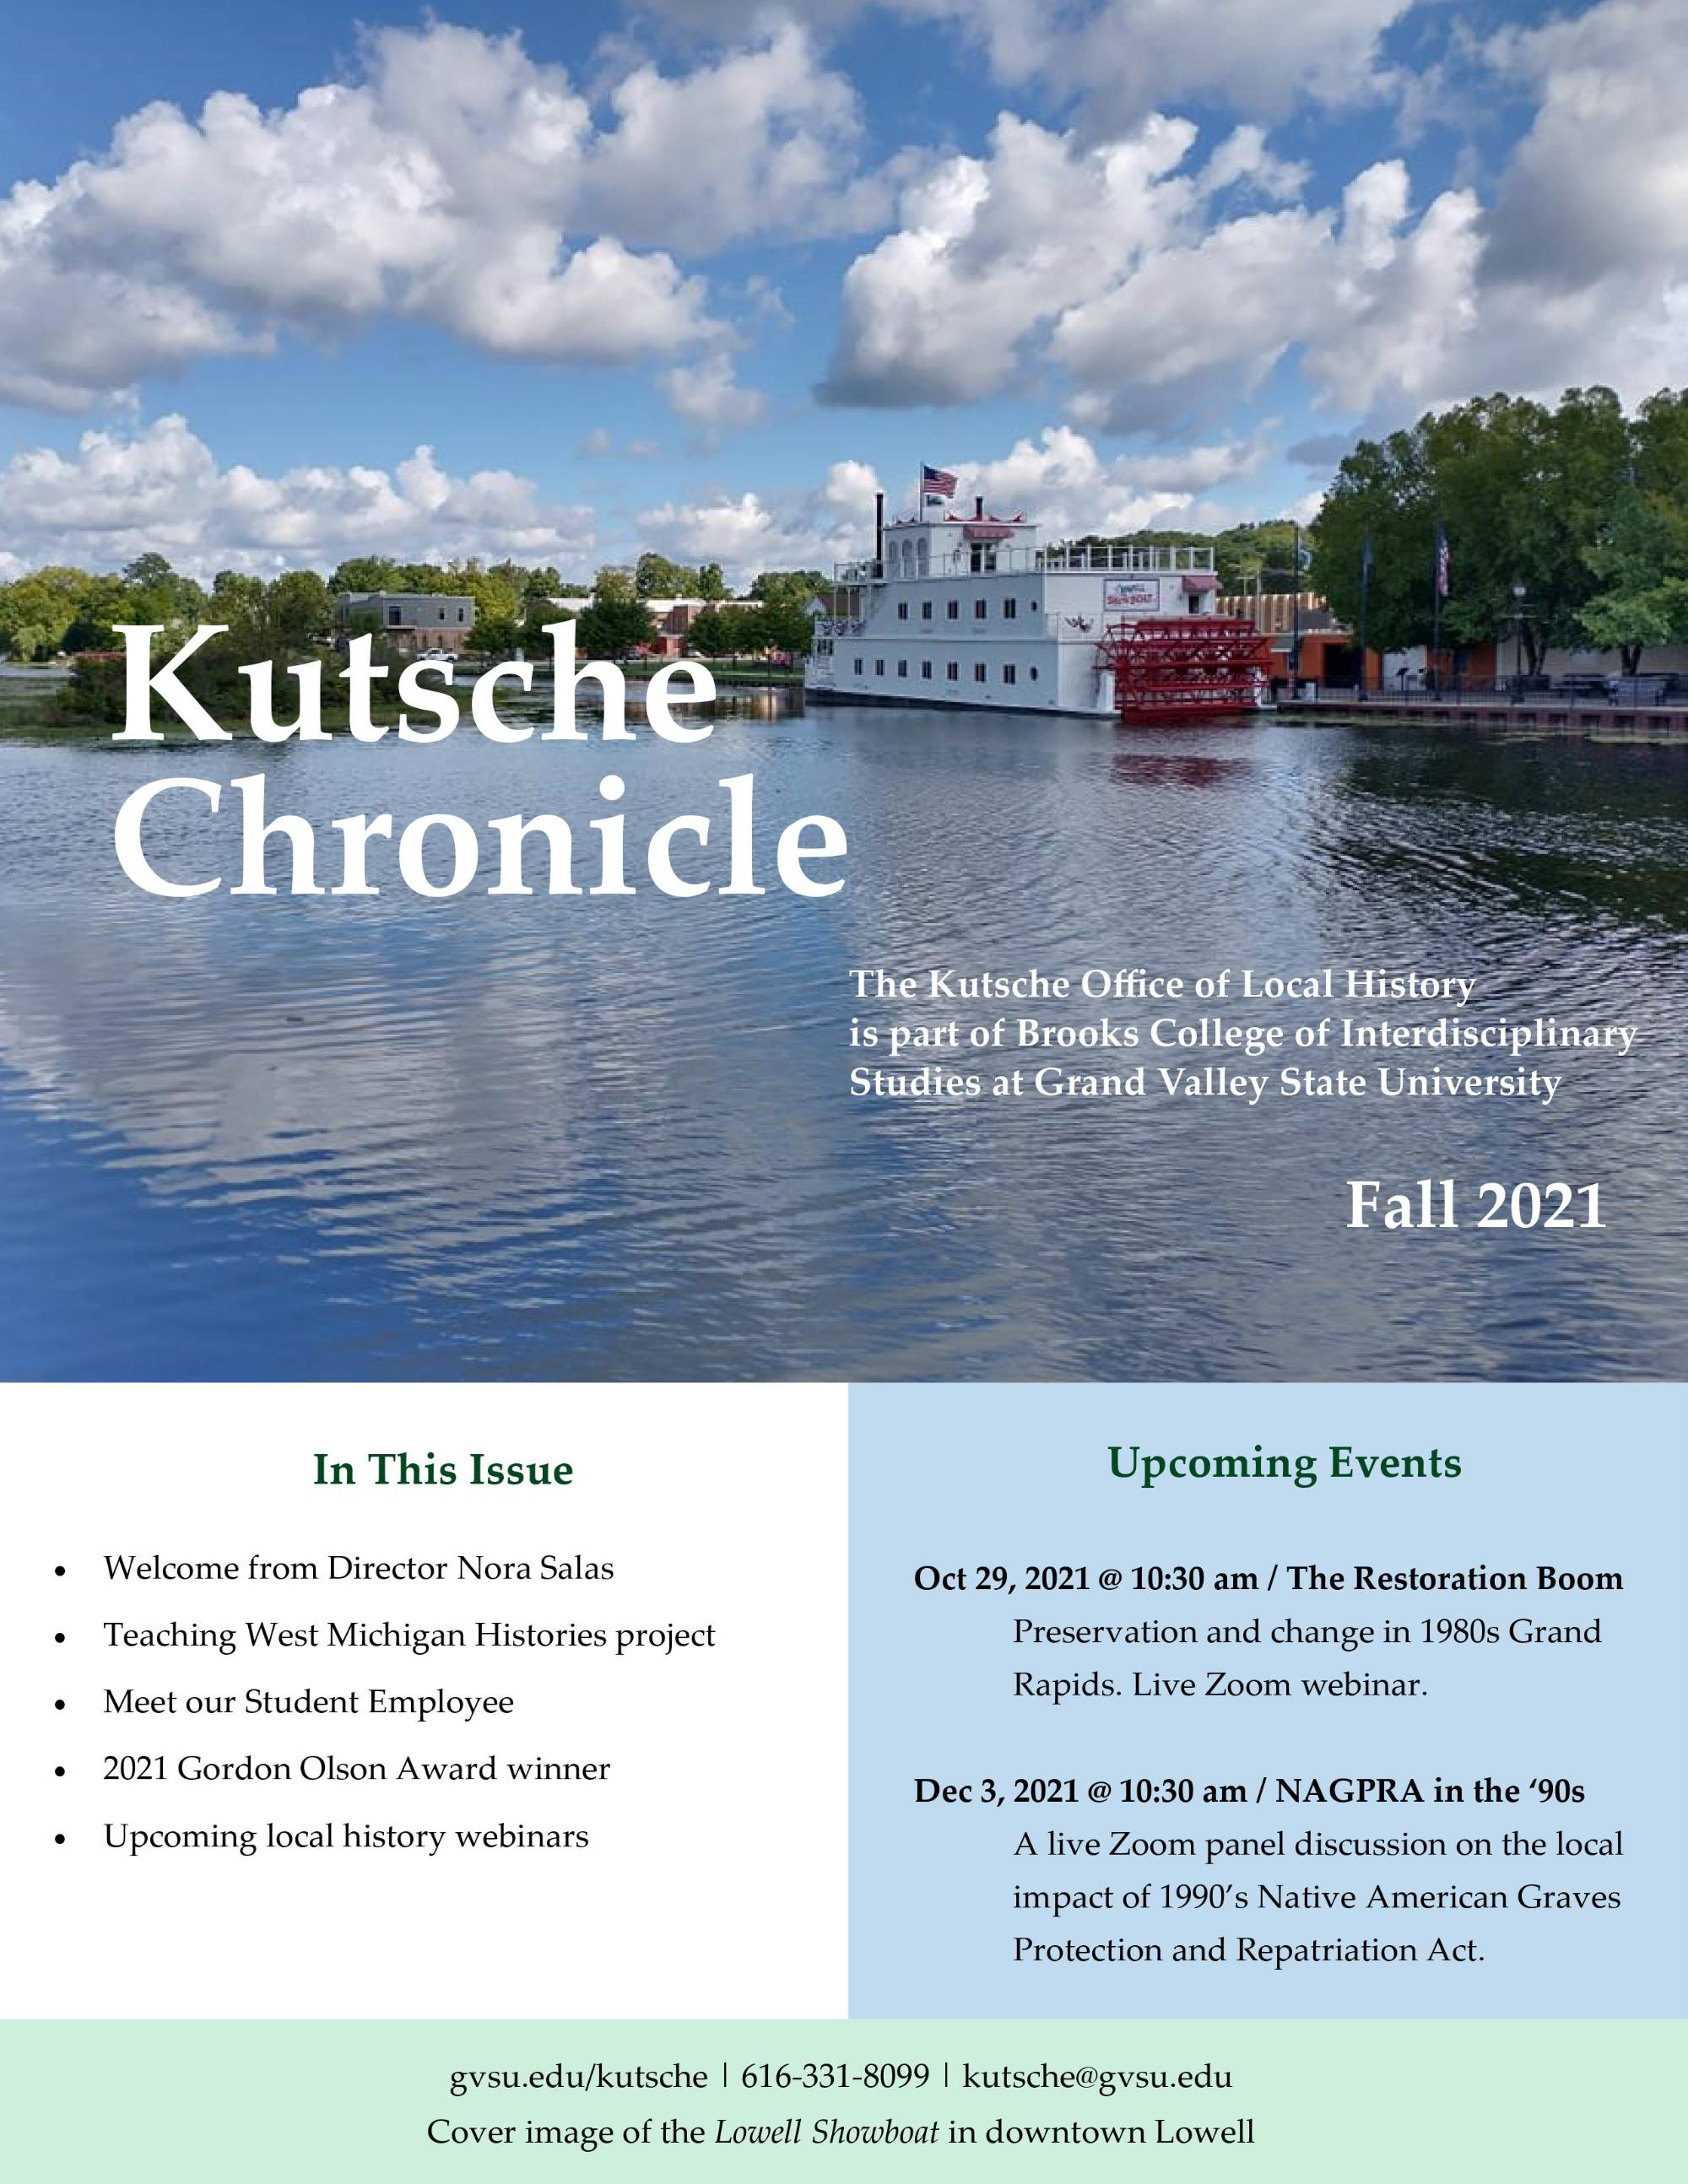 Cover of the Fall 2021 Kutsche Chronicle